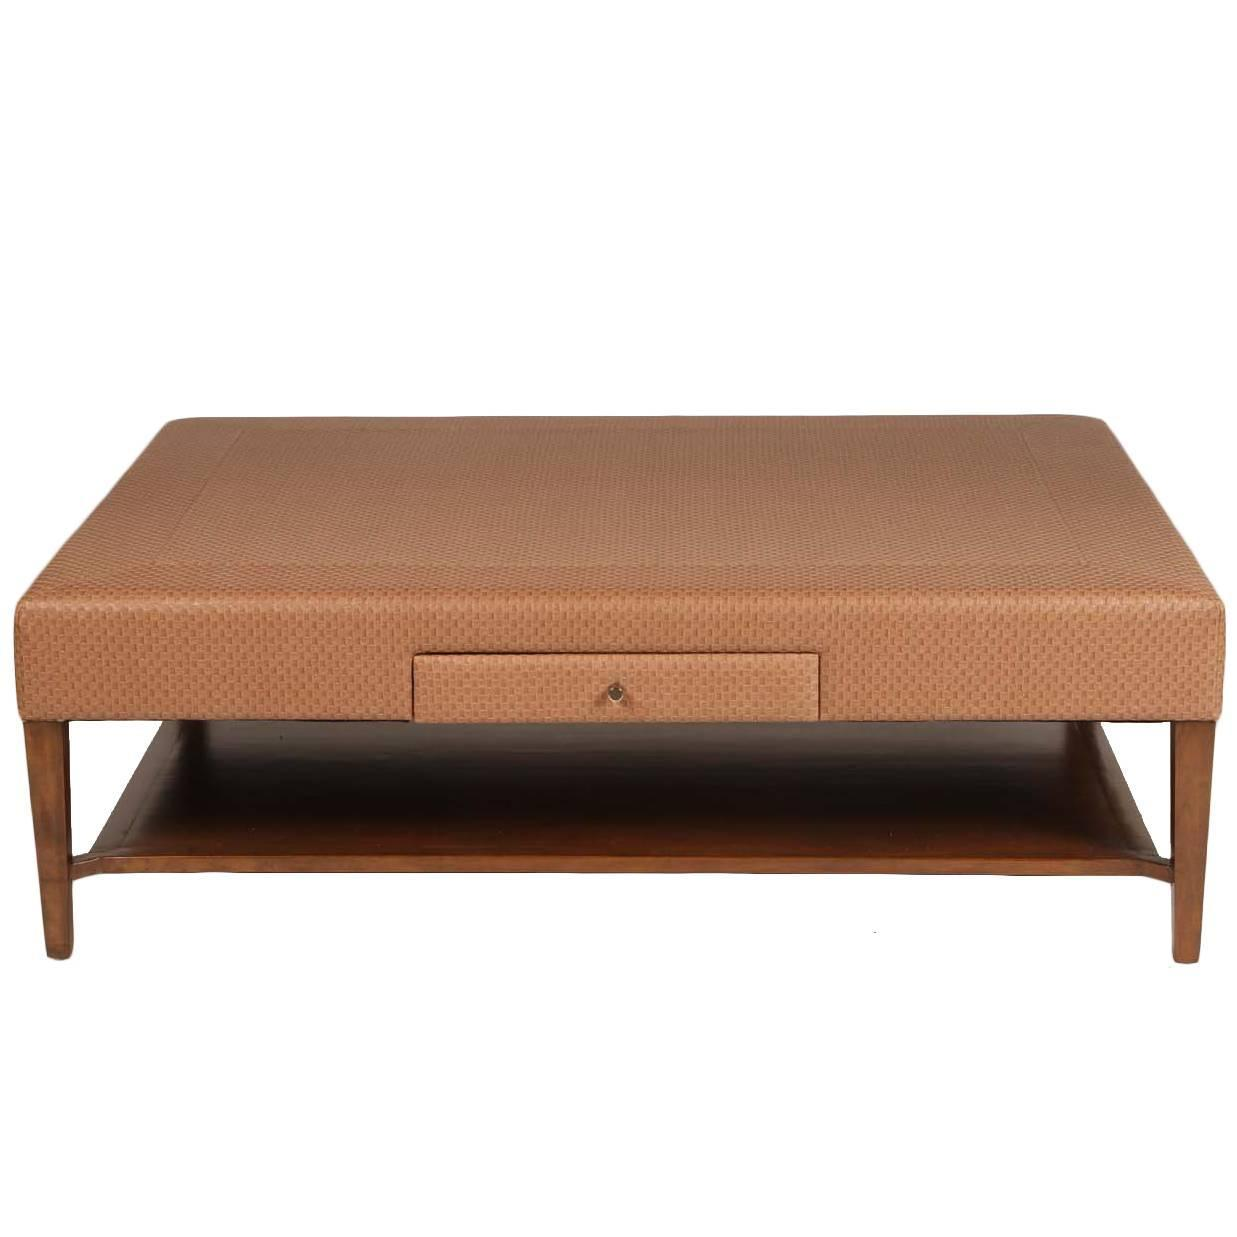 Large Scale Upholstered Coffee Table For Sale At 1stdibs